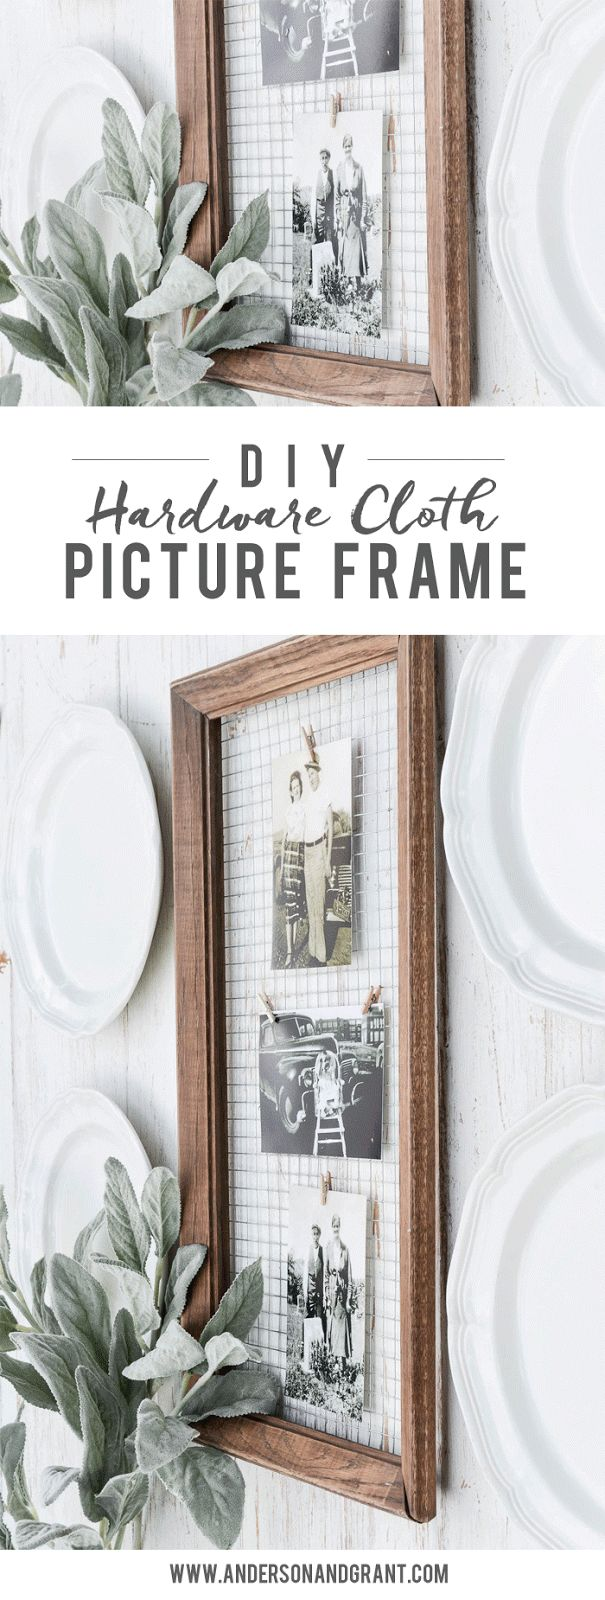 How to Display Photographs in a Unique DIY Picture Frame - anderson + grant